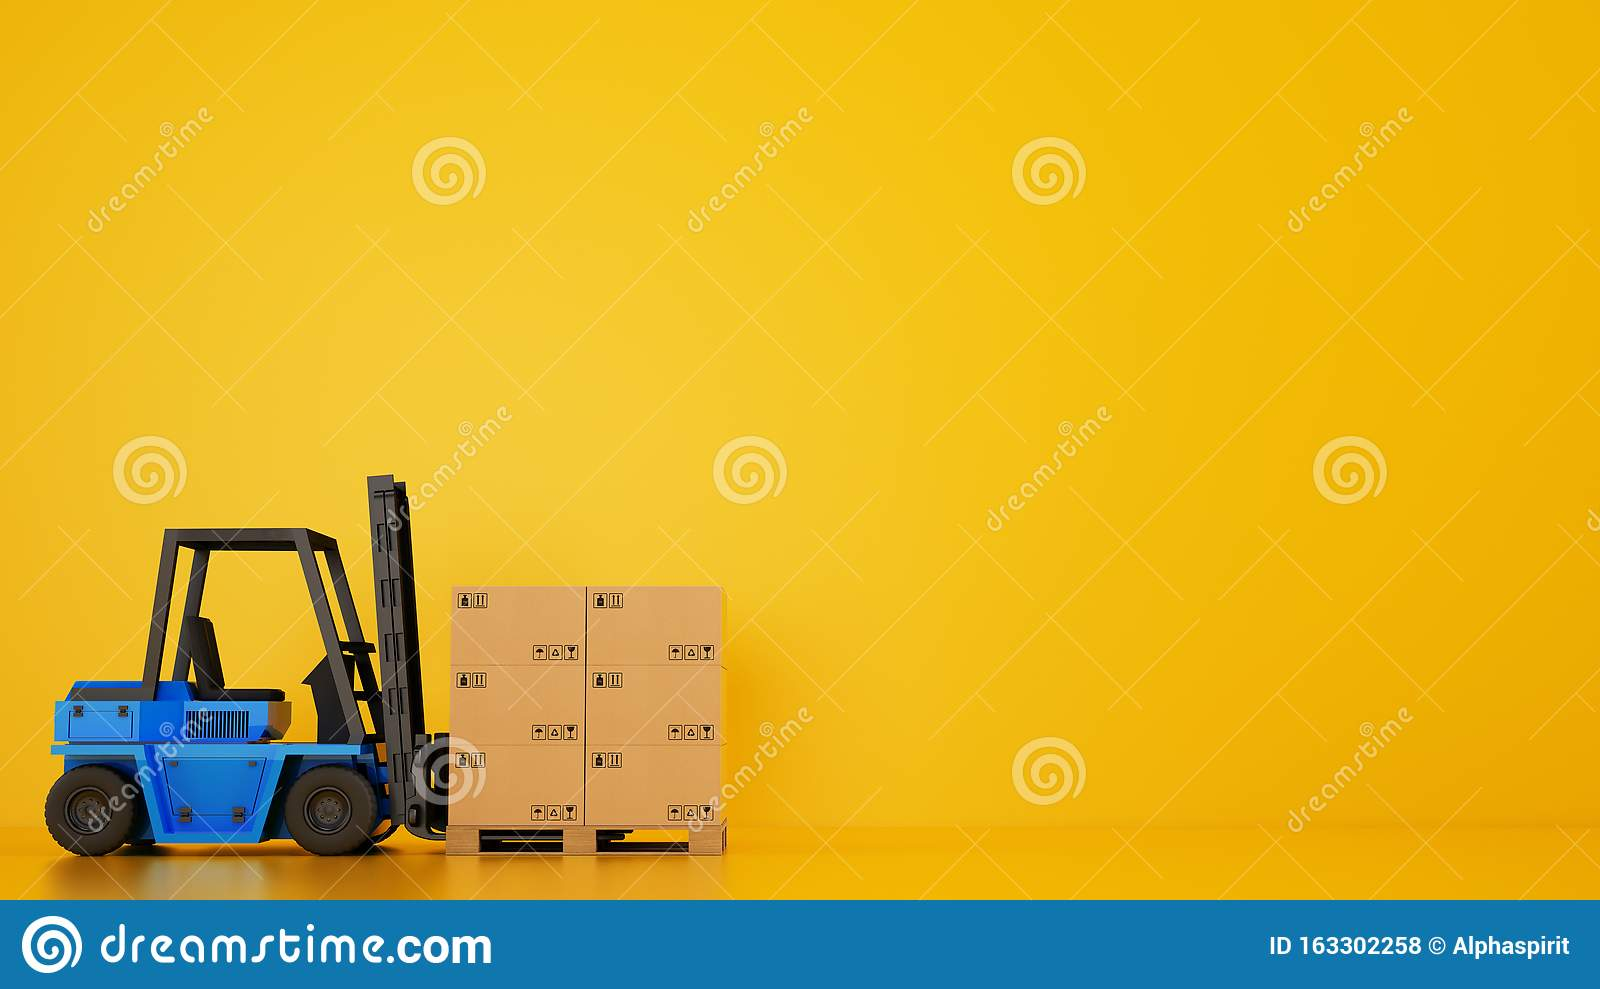 Electric blue forklift loads a wooden pallet with boxes on yellow background